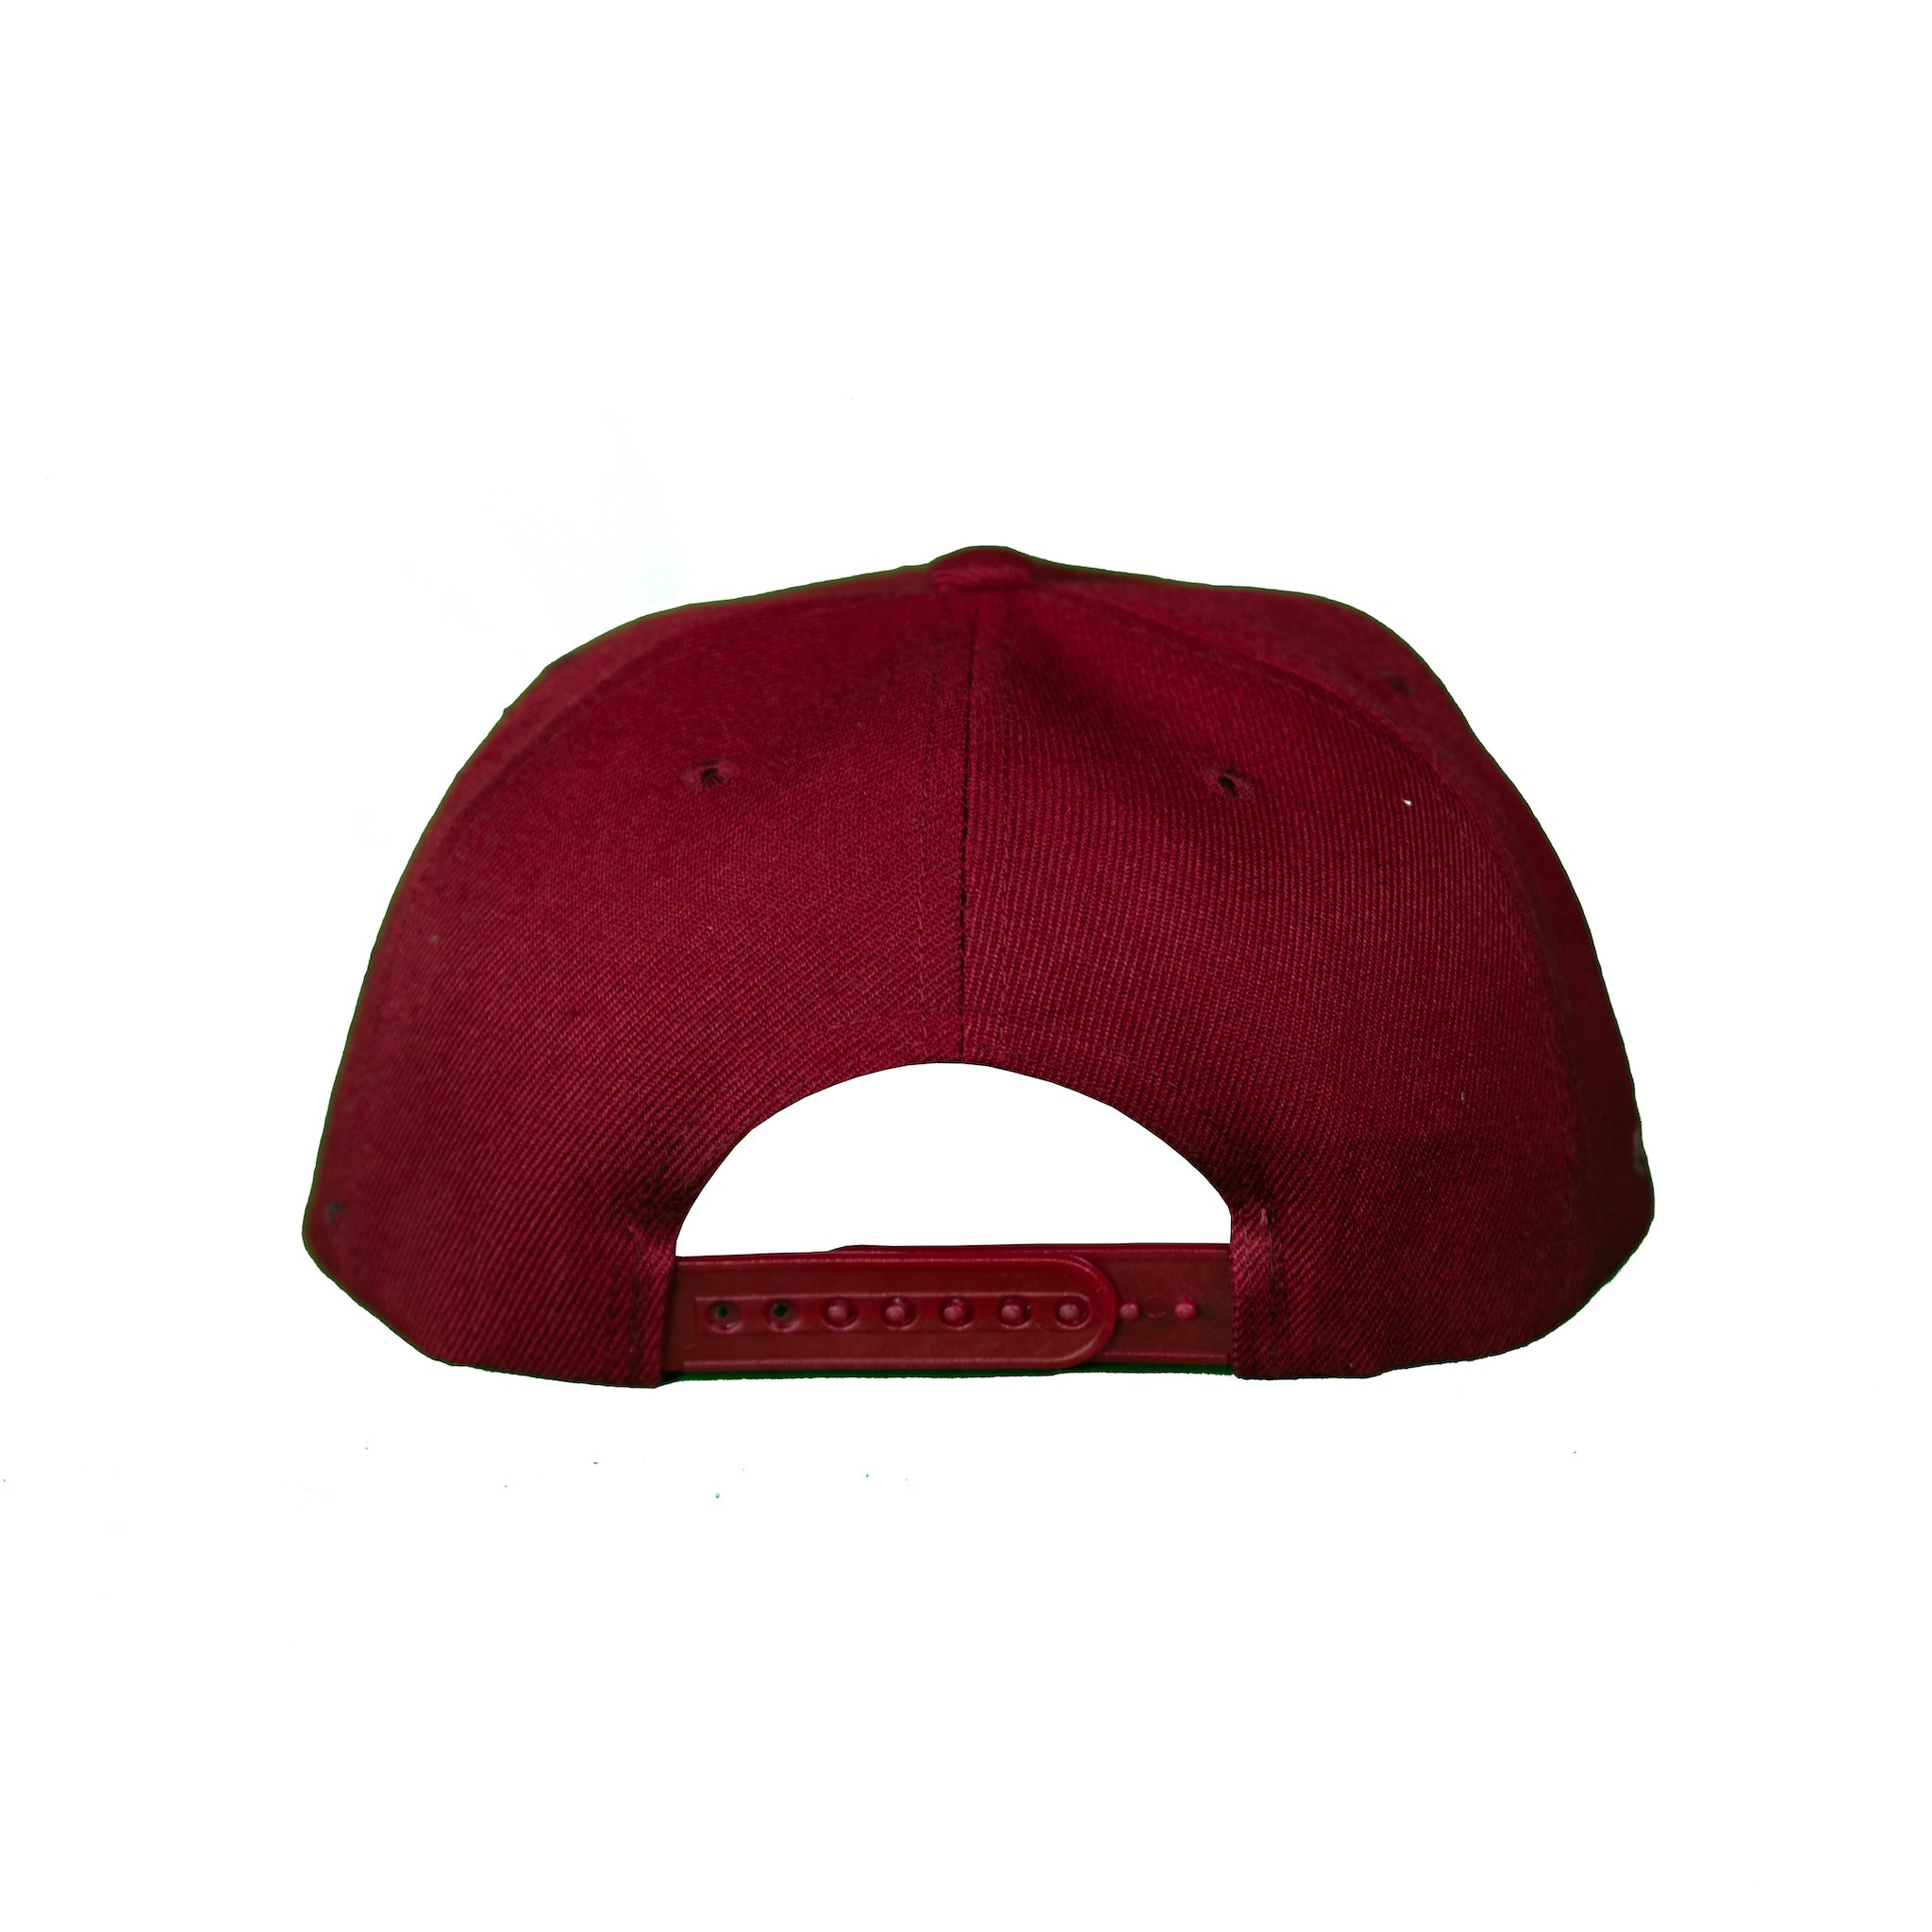 Basic Solid Snap Back in Maroon